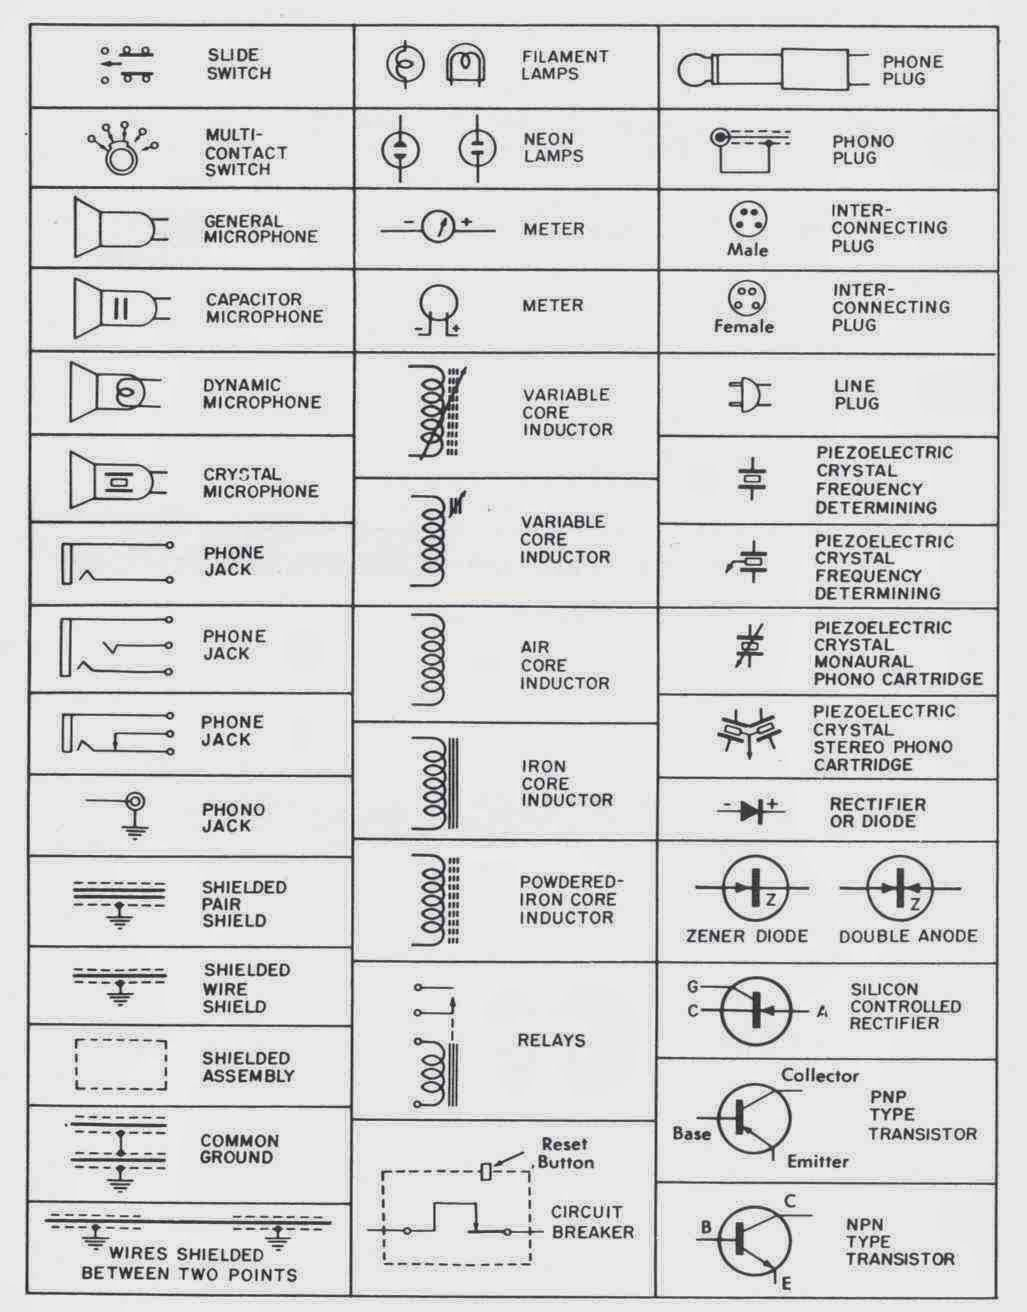 Electronic Schematic Symbols Fylp Restorations Antique